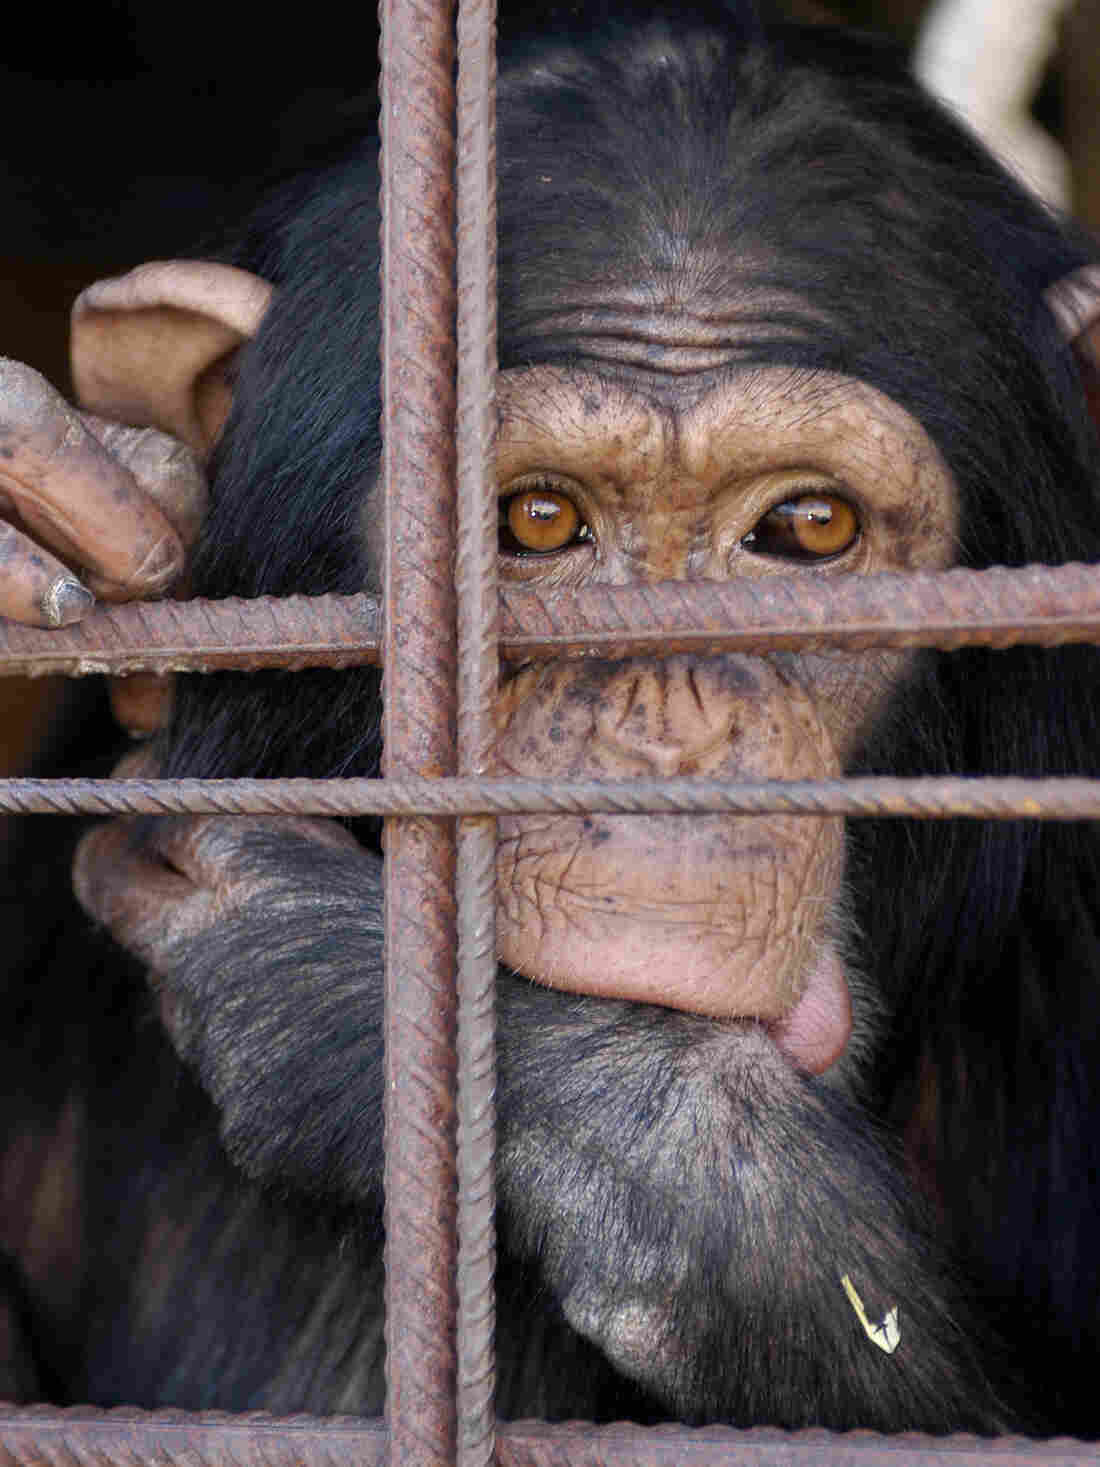 A caged chimpanzee in Madrid, Spain.